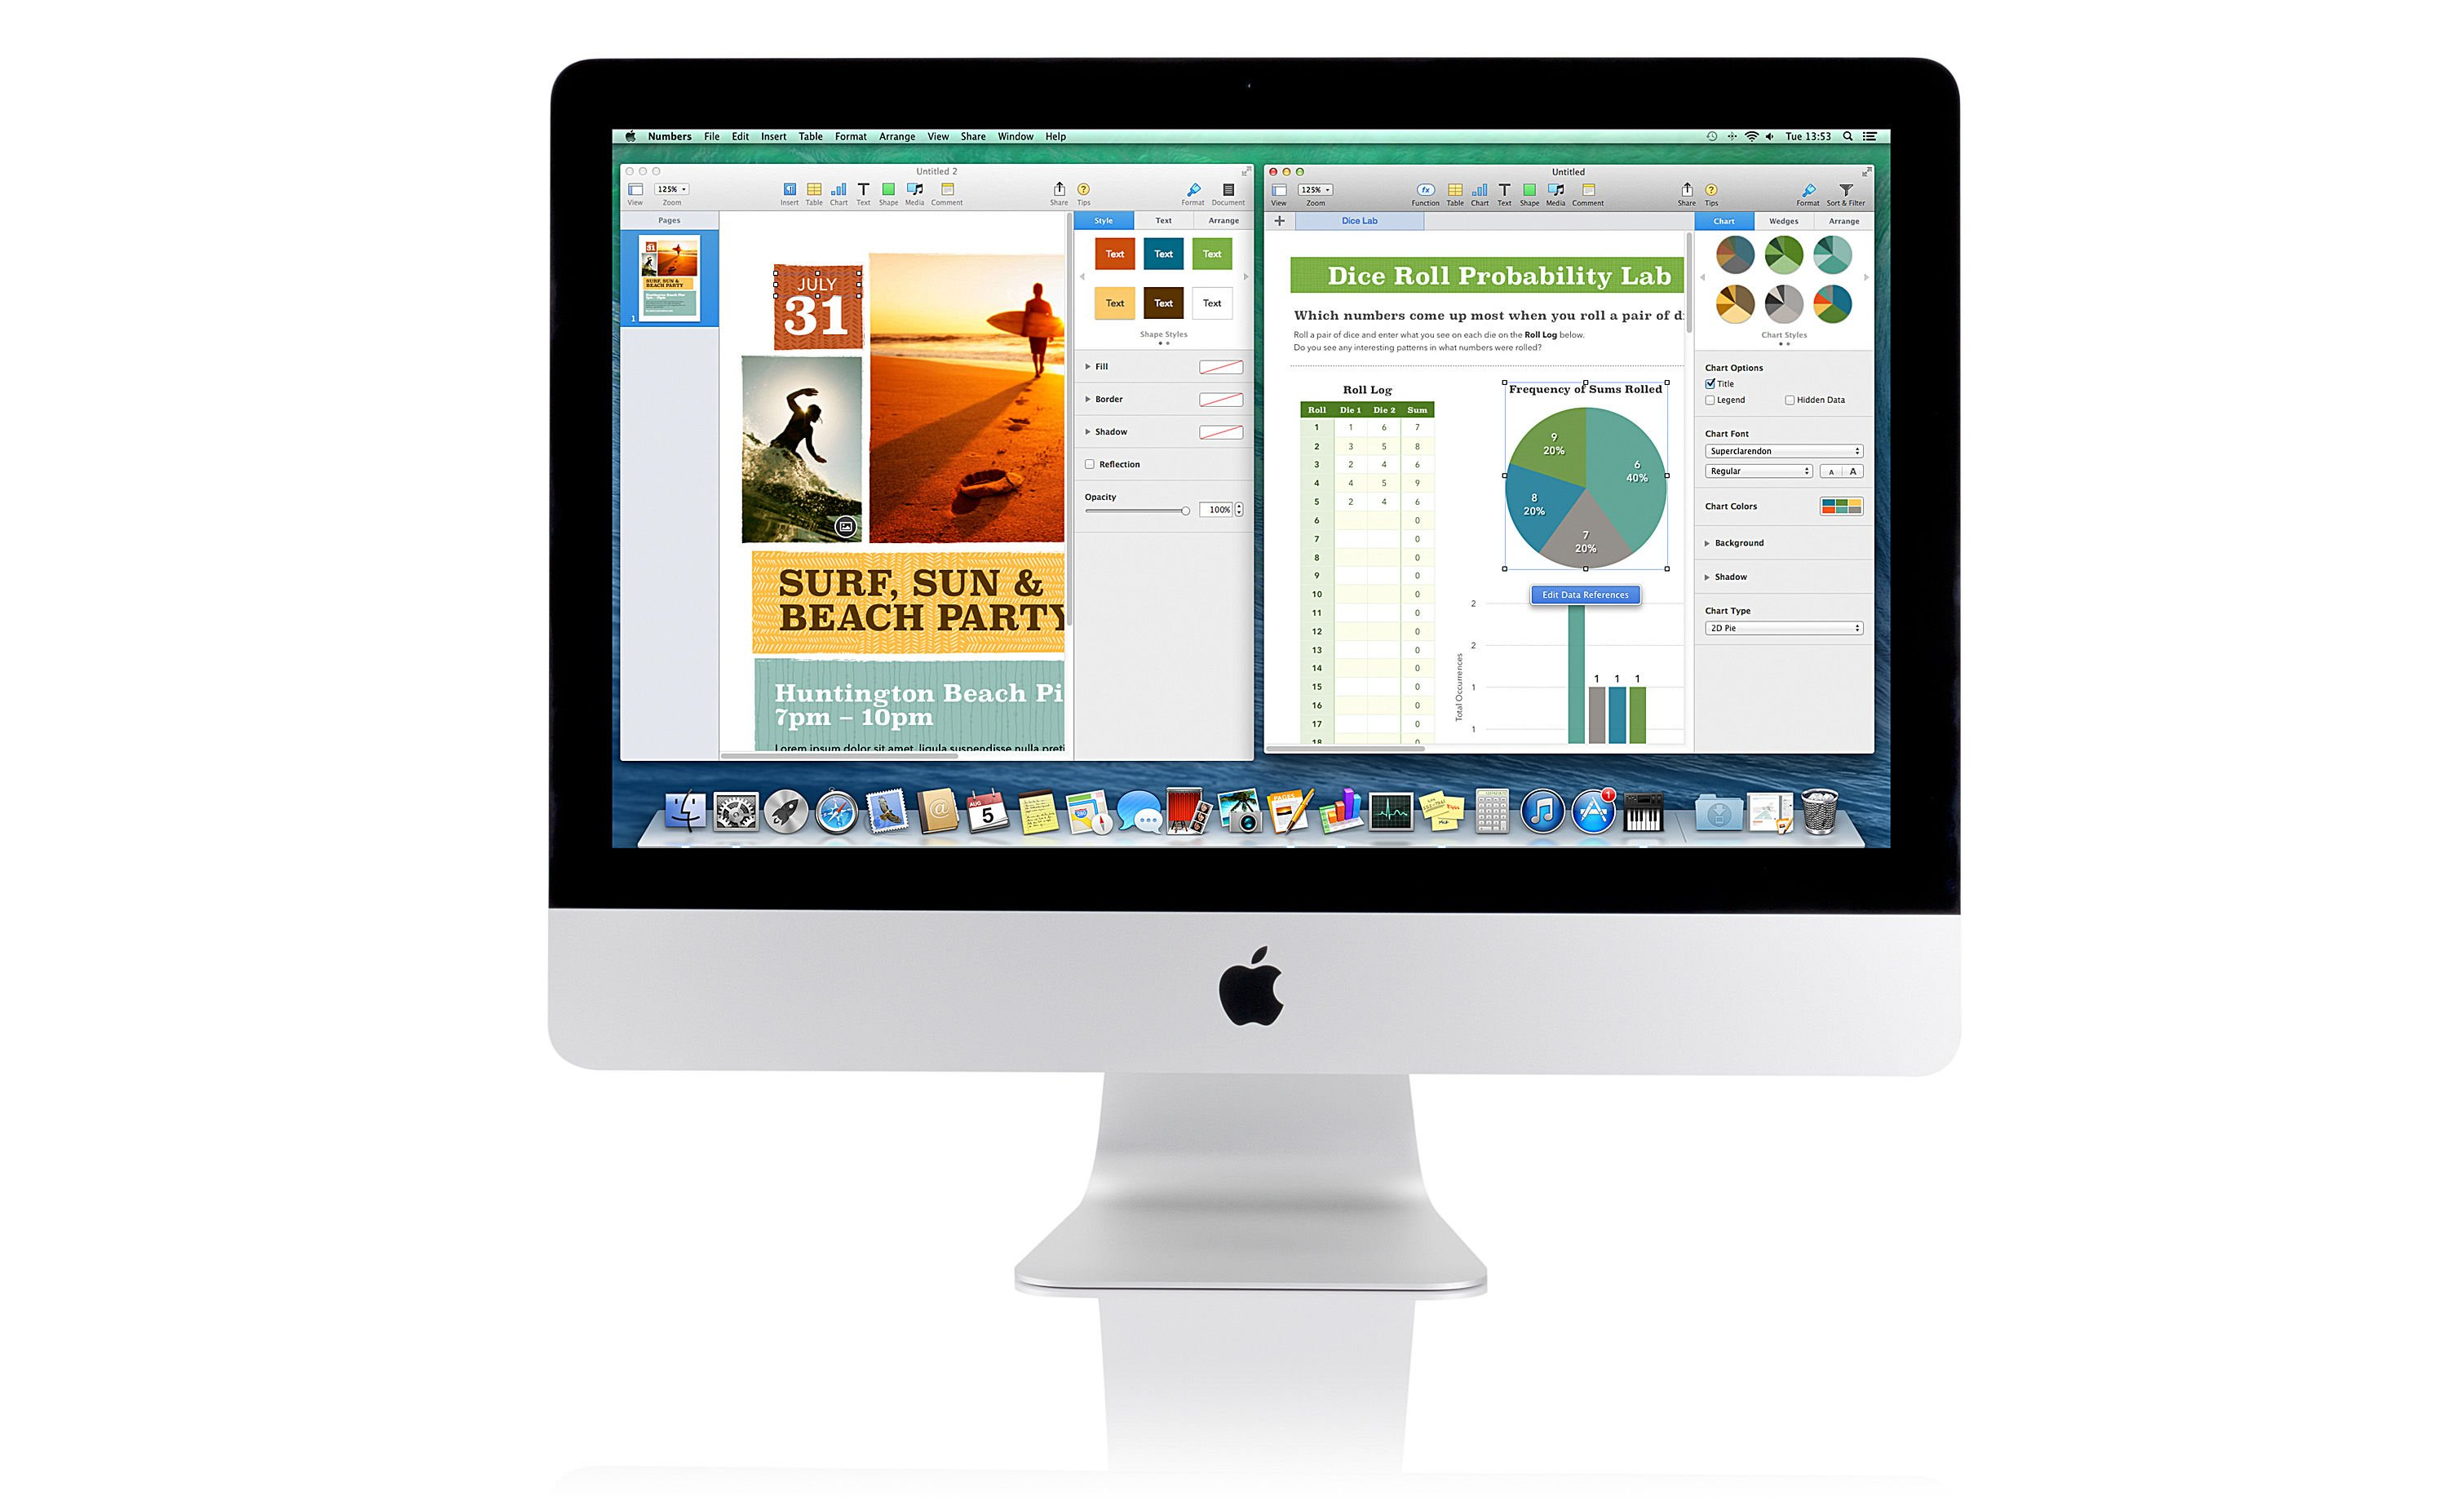 How to sell iMac